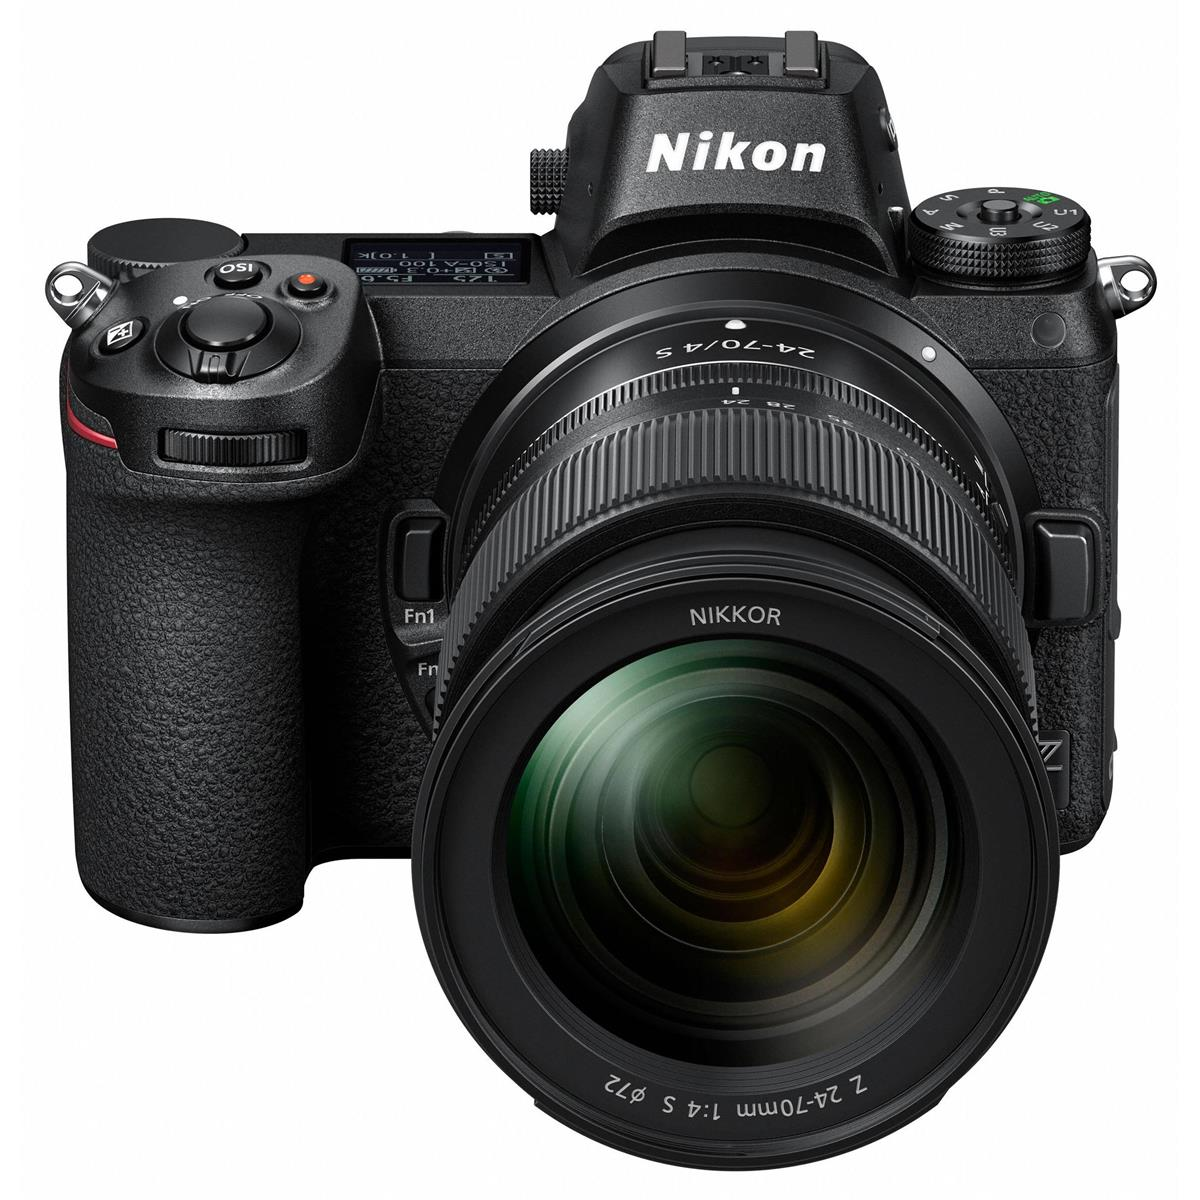 Hot Deal: Refurbished Nikon Z6 for $1,199 at Adorama!